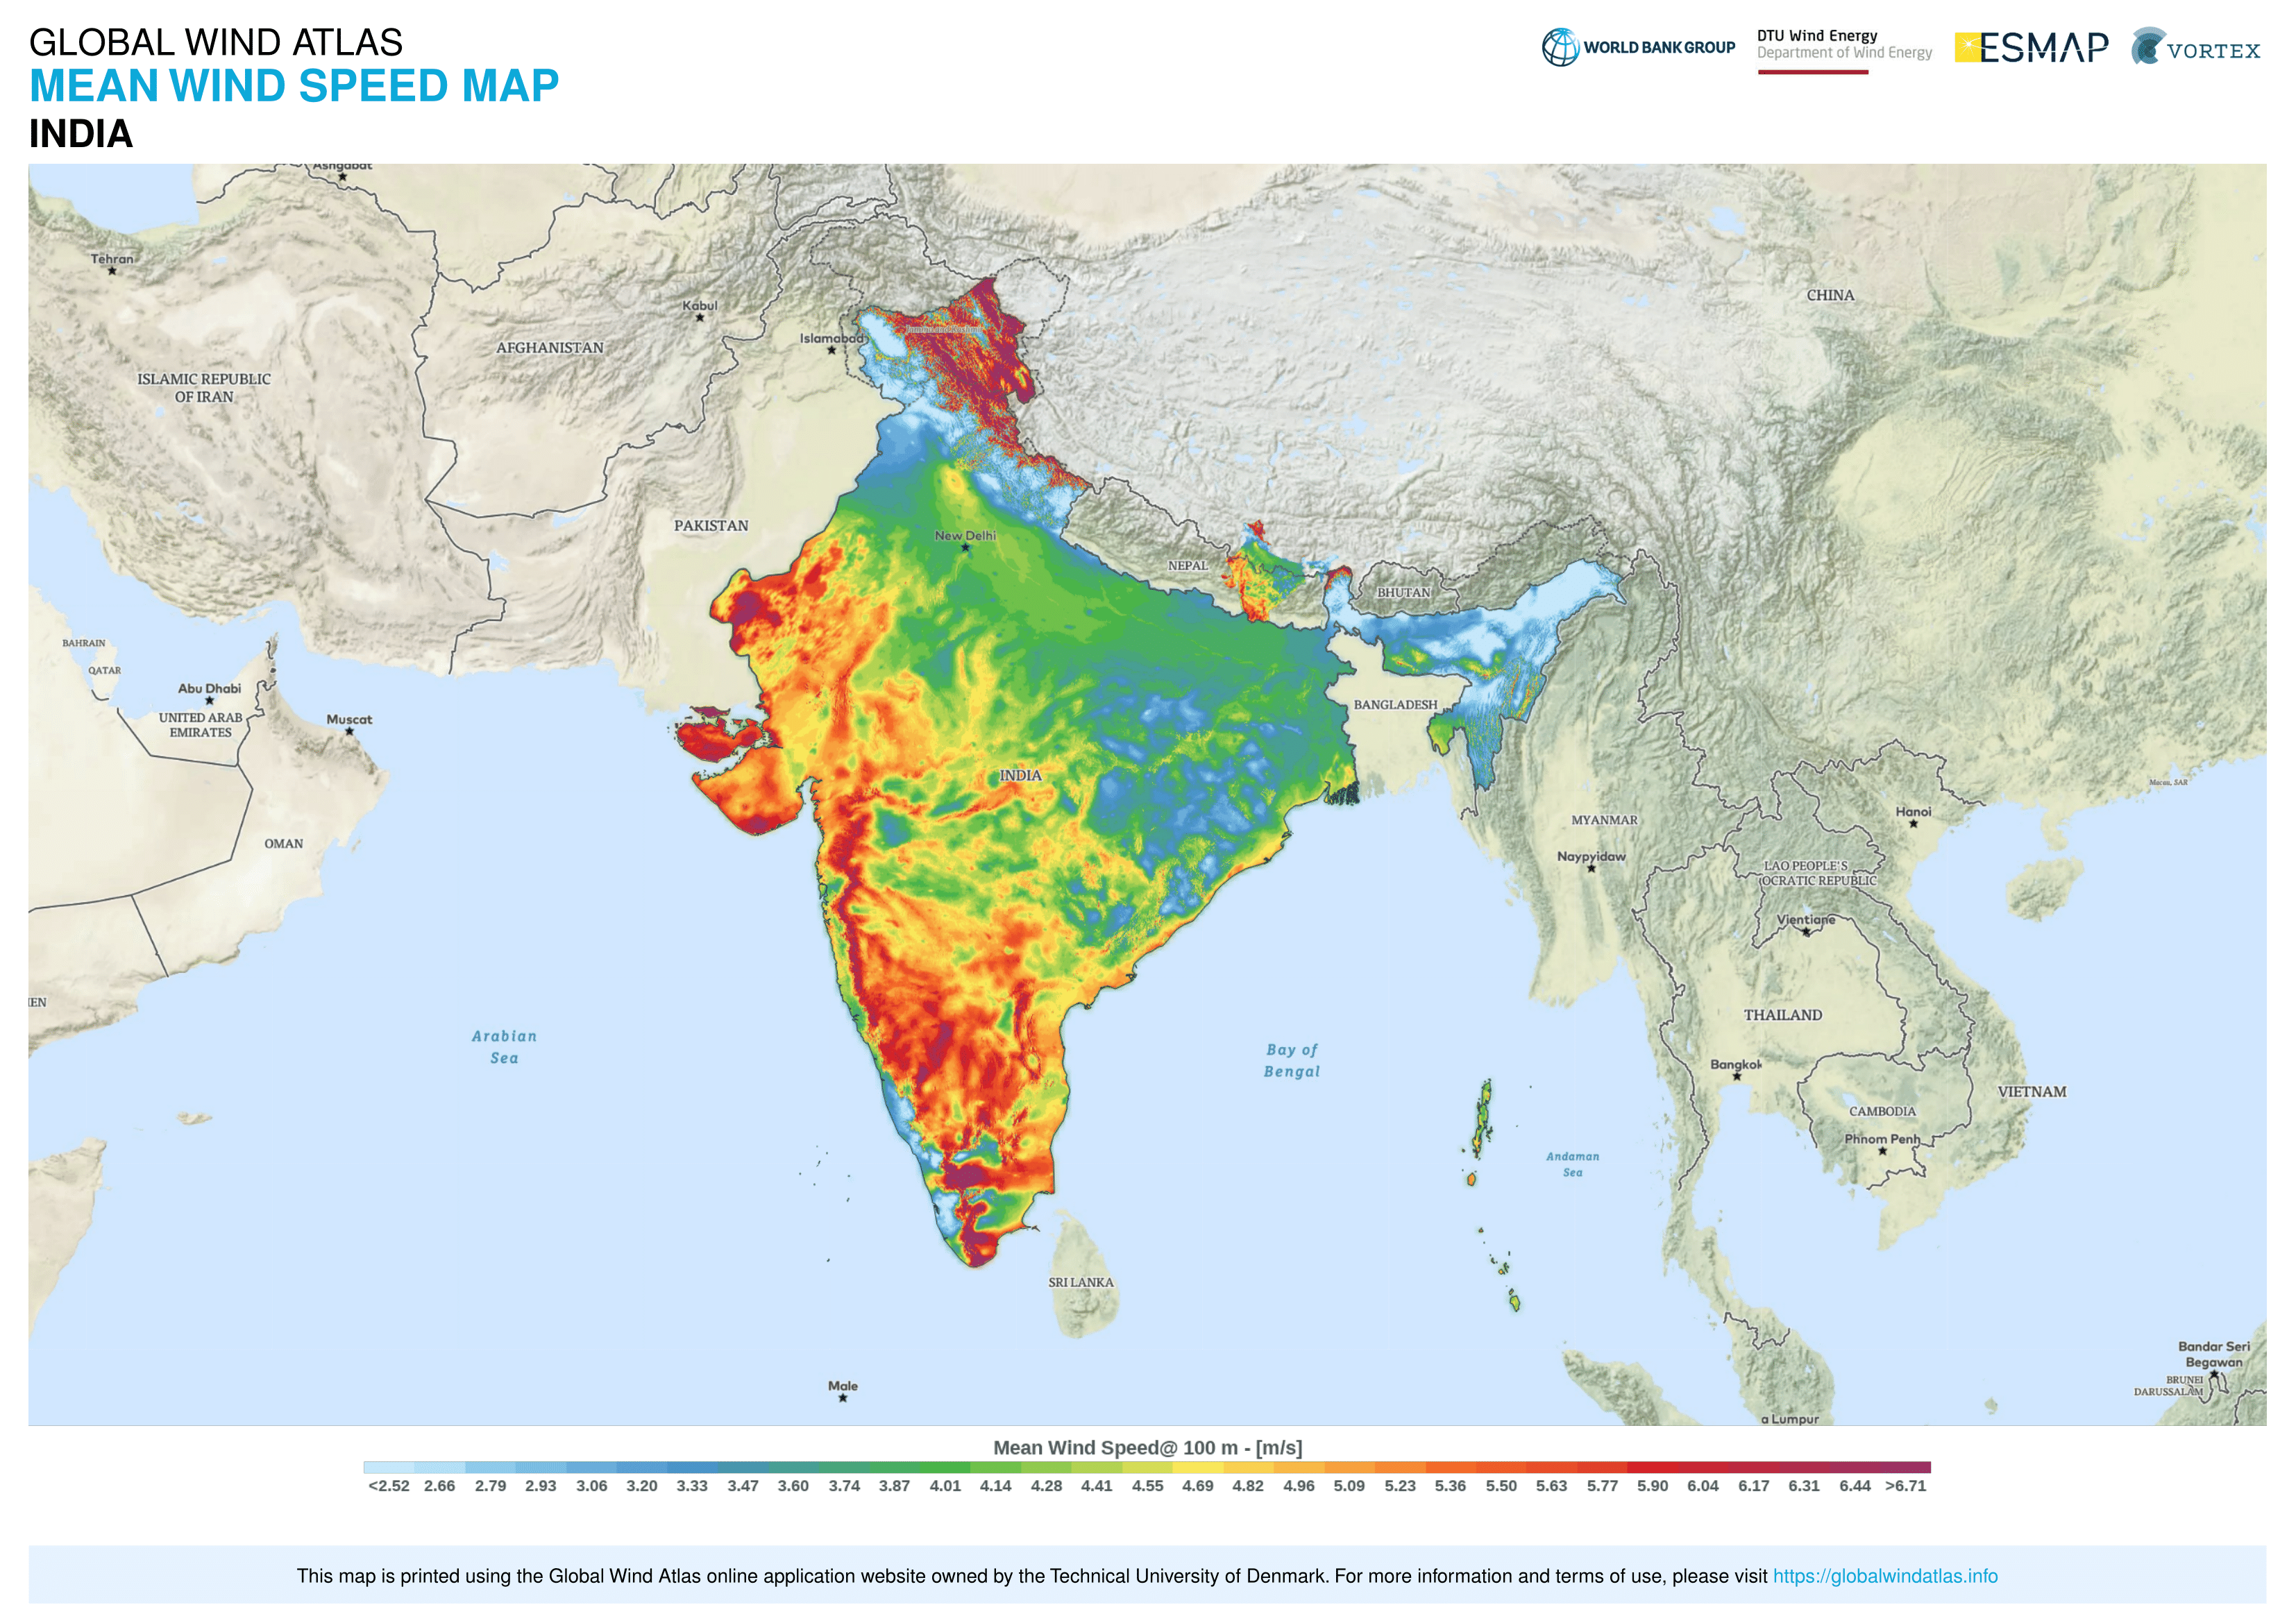 World Bank Launches New Version of Global Wind Atlas for Onshore and Offshore Wind